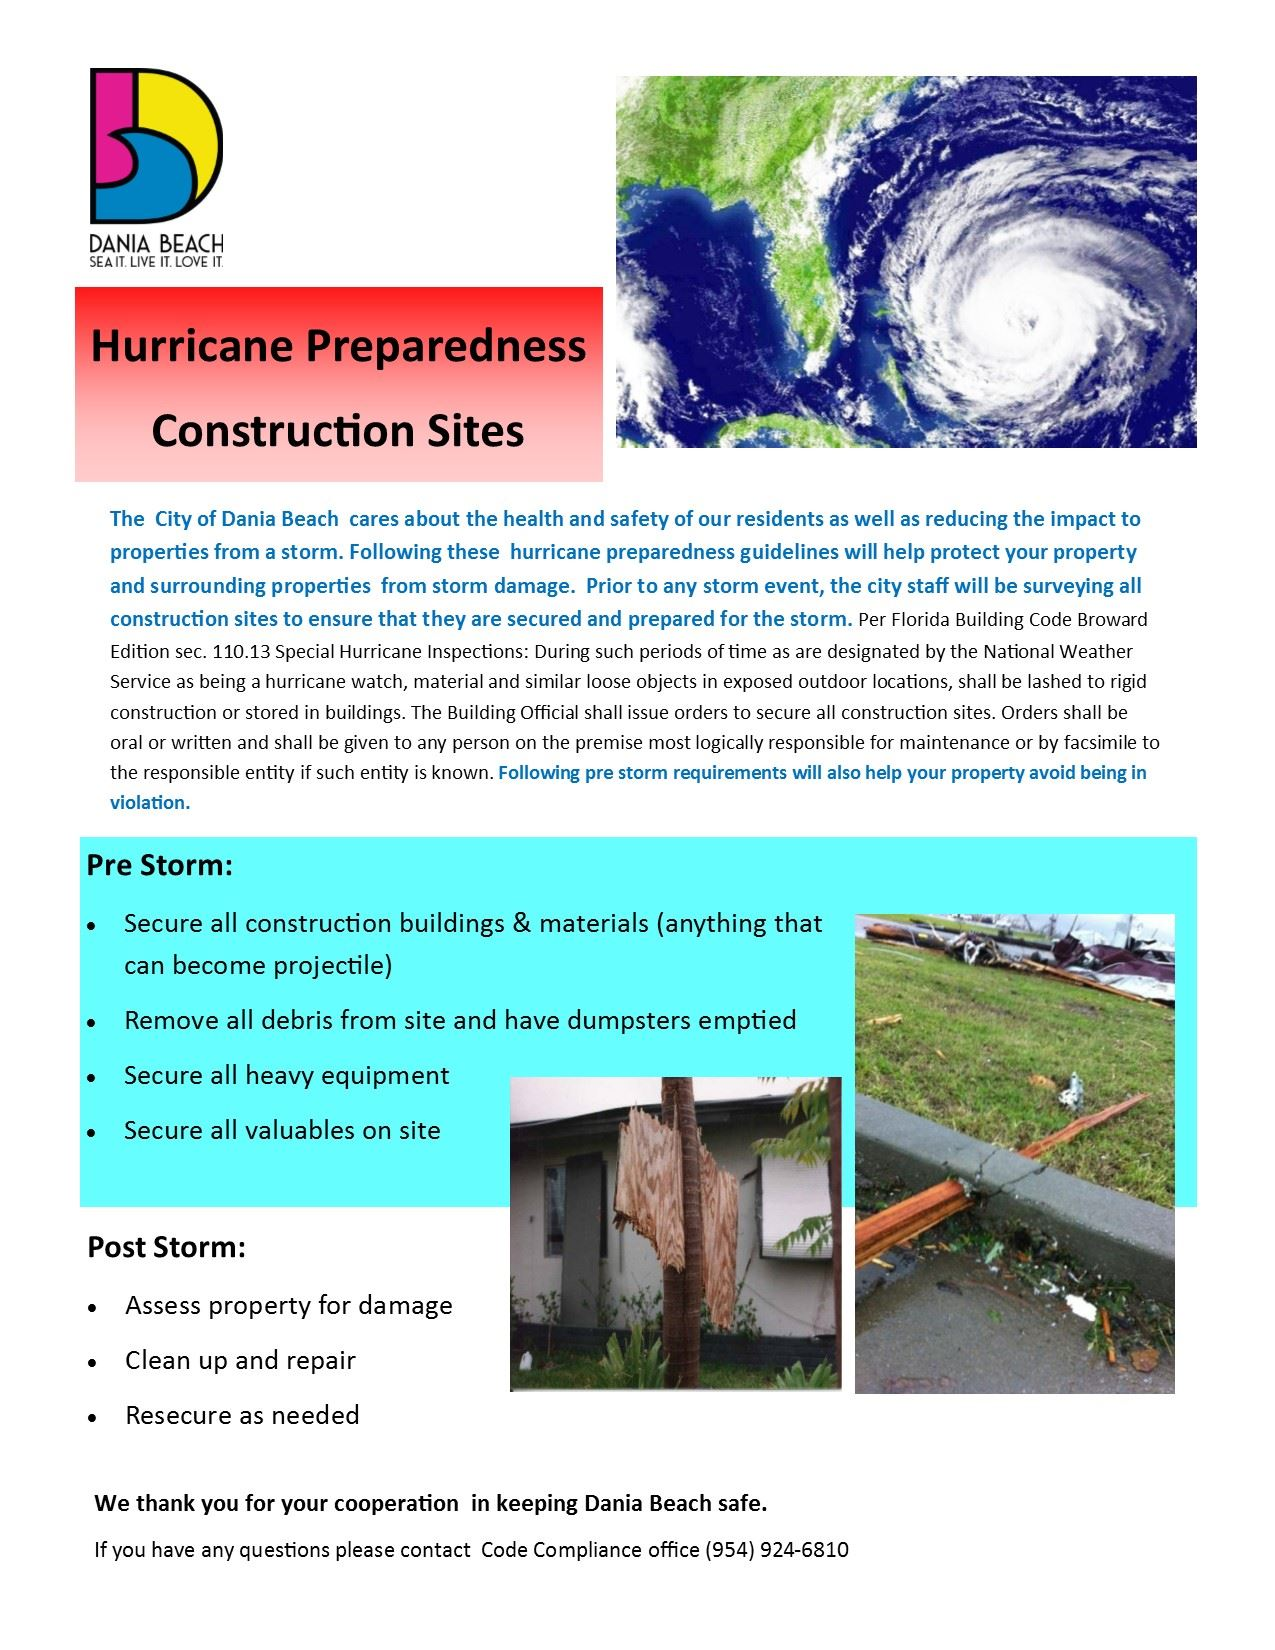 Hurricane Preparedness Construction Sites